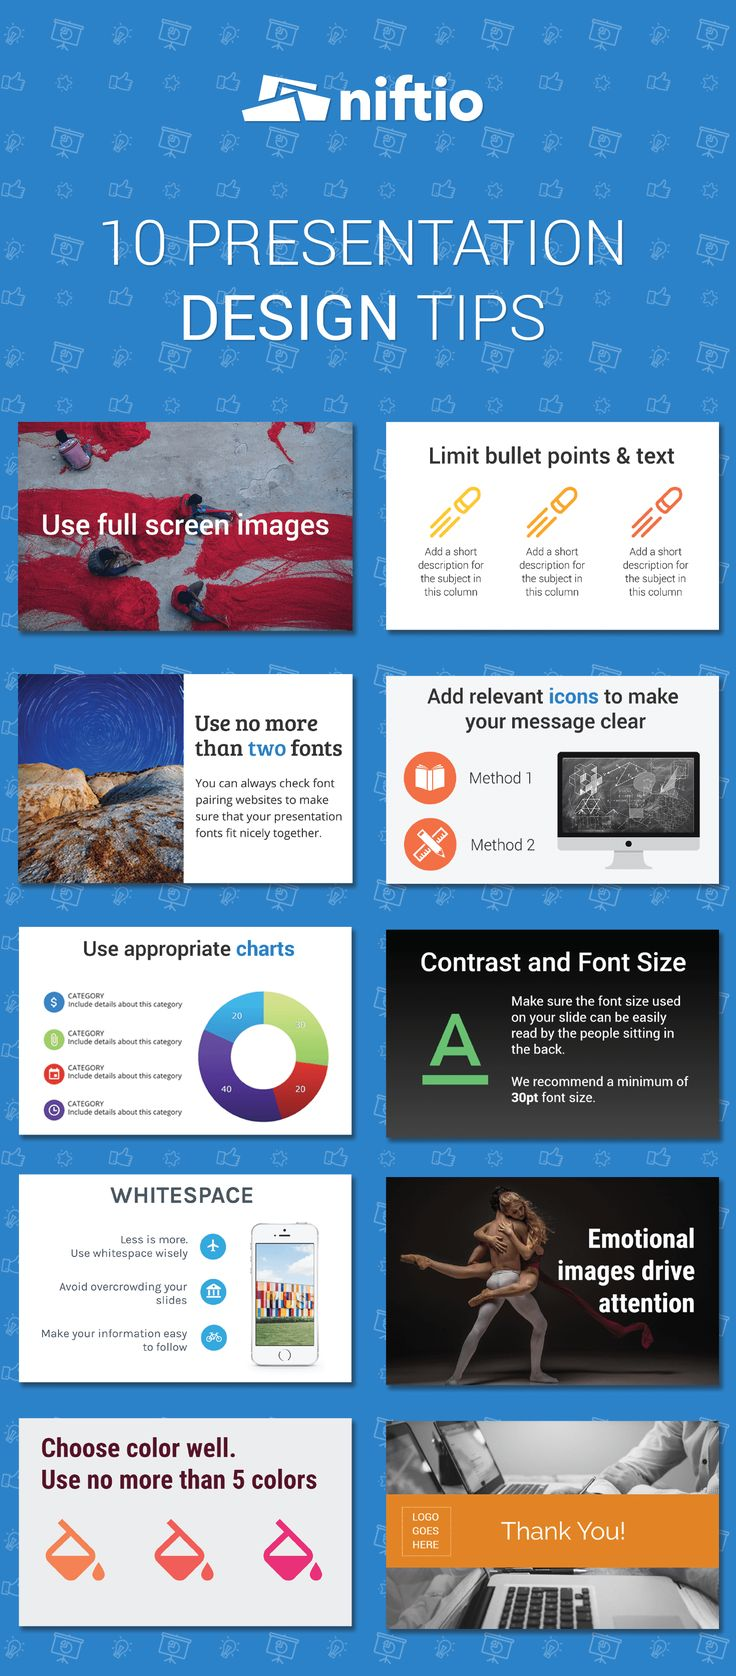 Tips to create great presentations | Create presentations fast and Easy | Presentations online | Powerpoint alternative | Presentation design tips